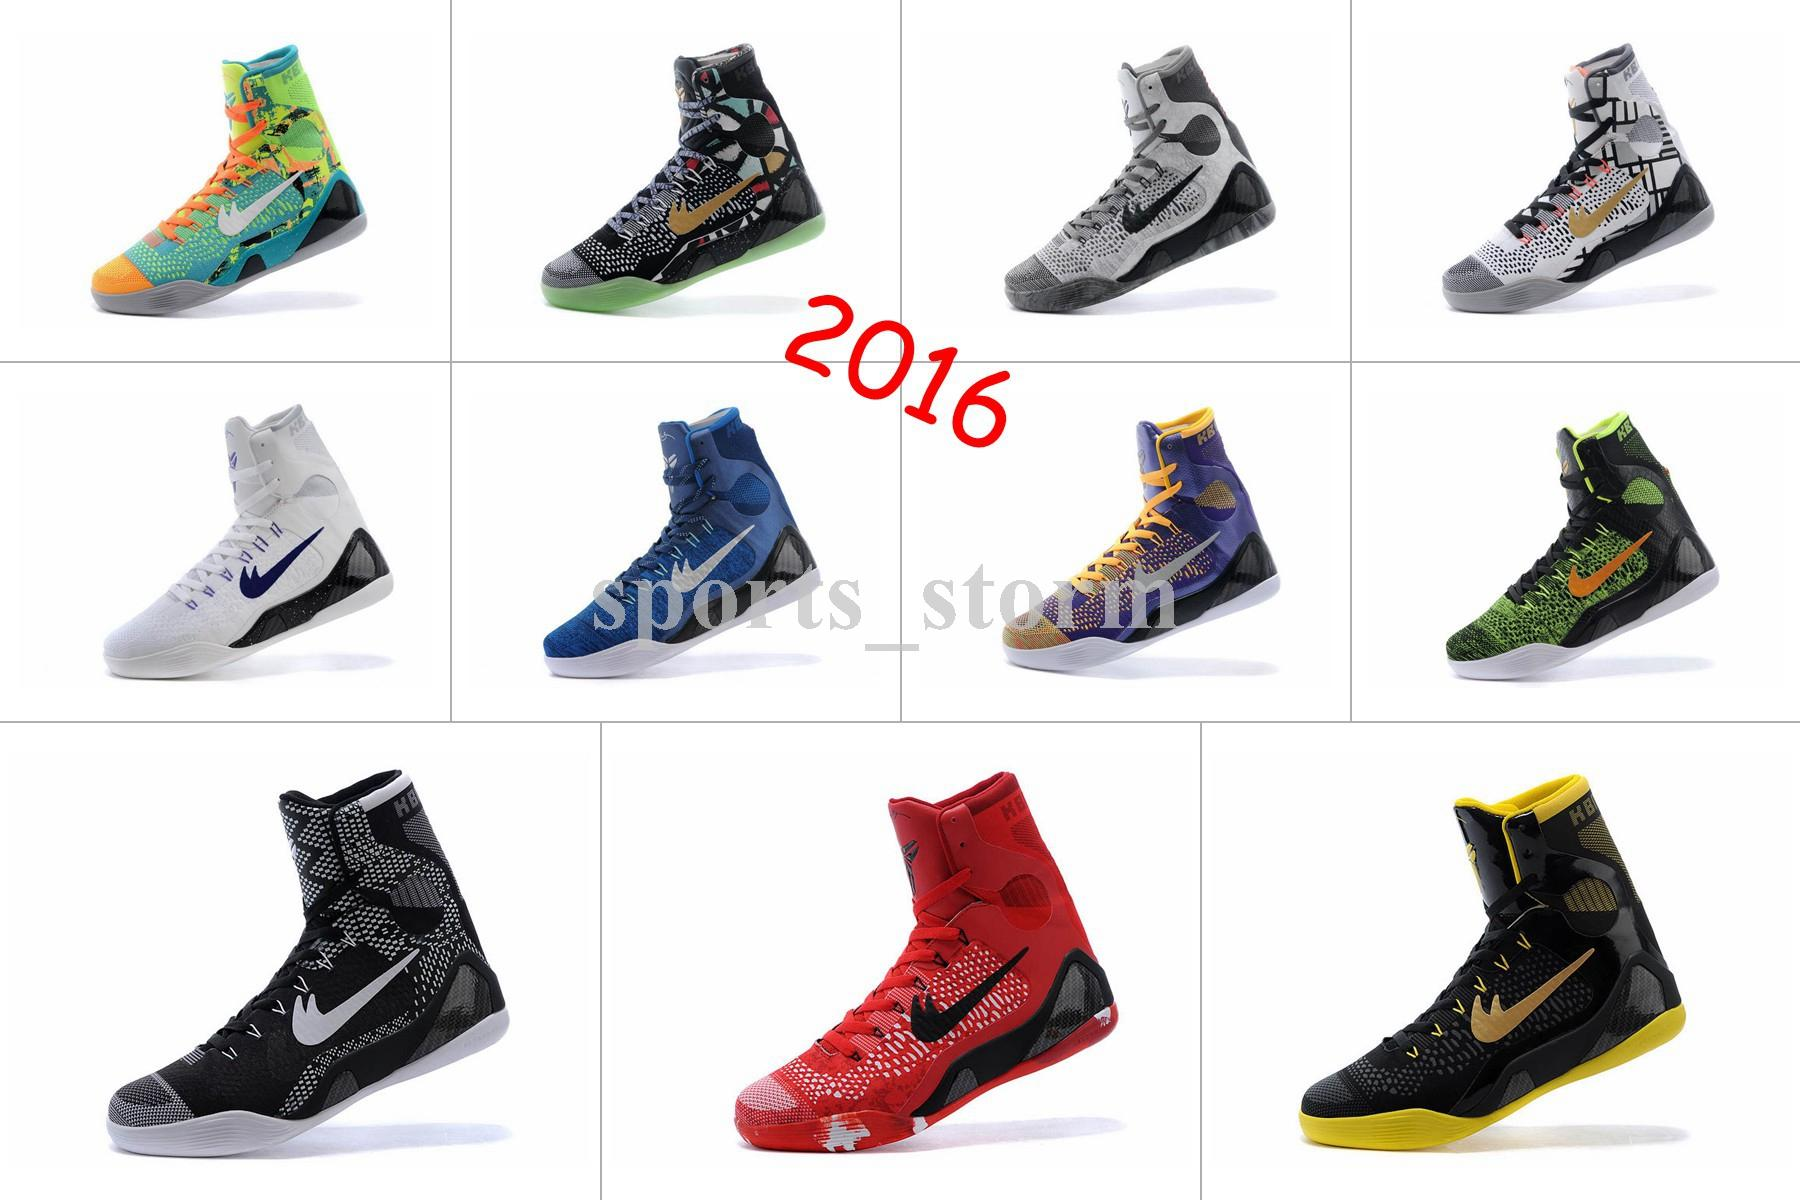 High Quality 2016 Hot New Generation Of Kobe Bryant Basketball Shoes 9 High  Top Sneakers Boots Summer Size:40 46 Kevin Durant Basketball Shoes  Basketball ...